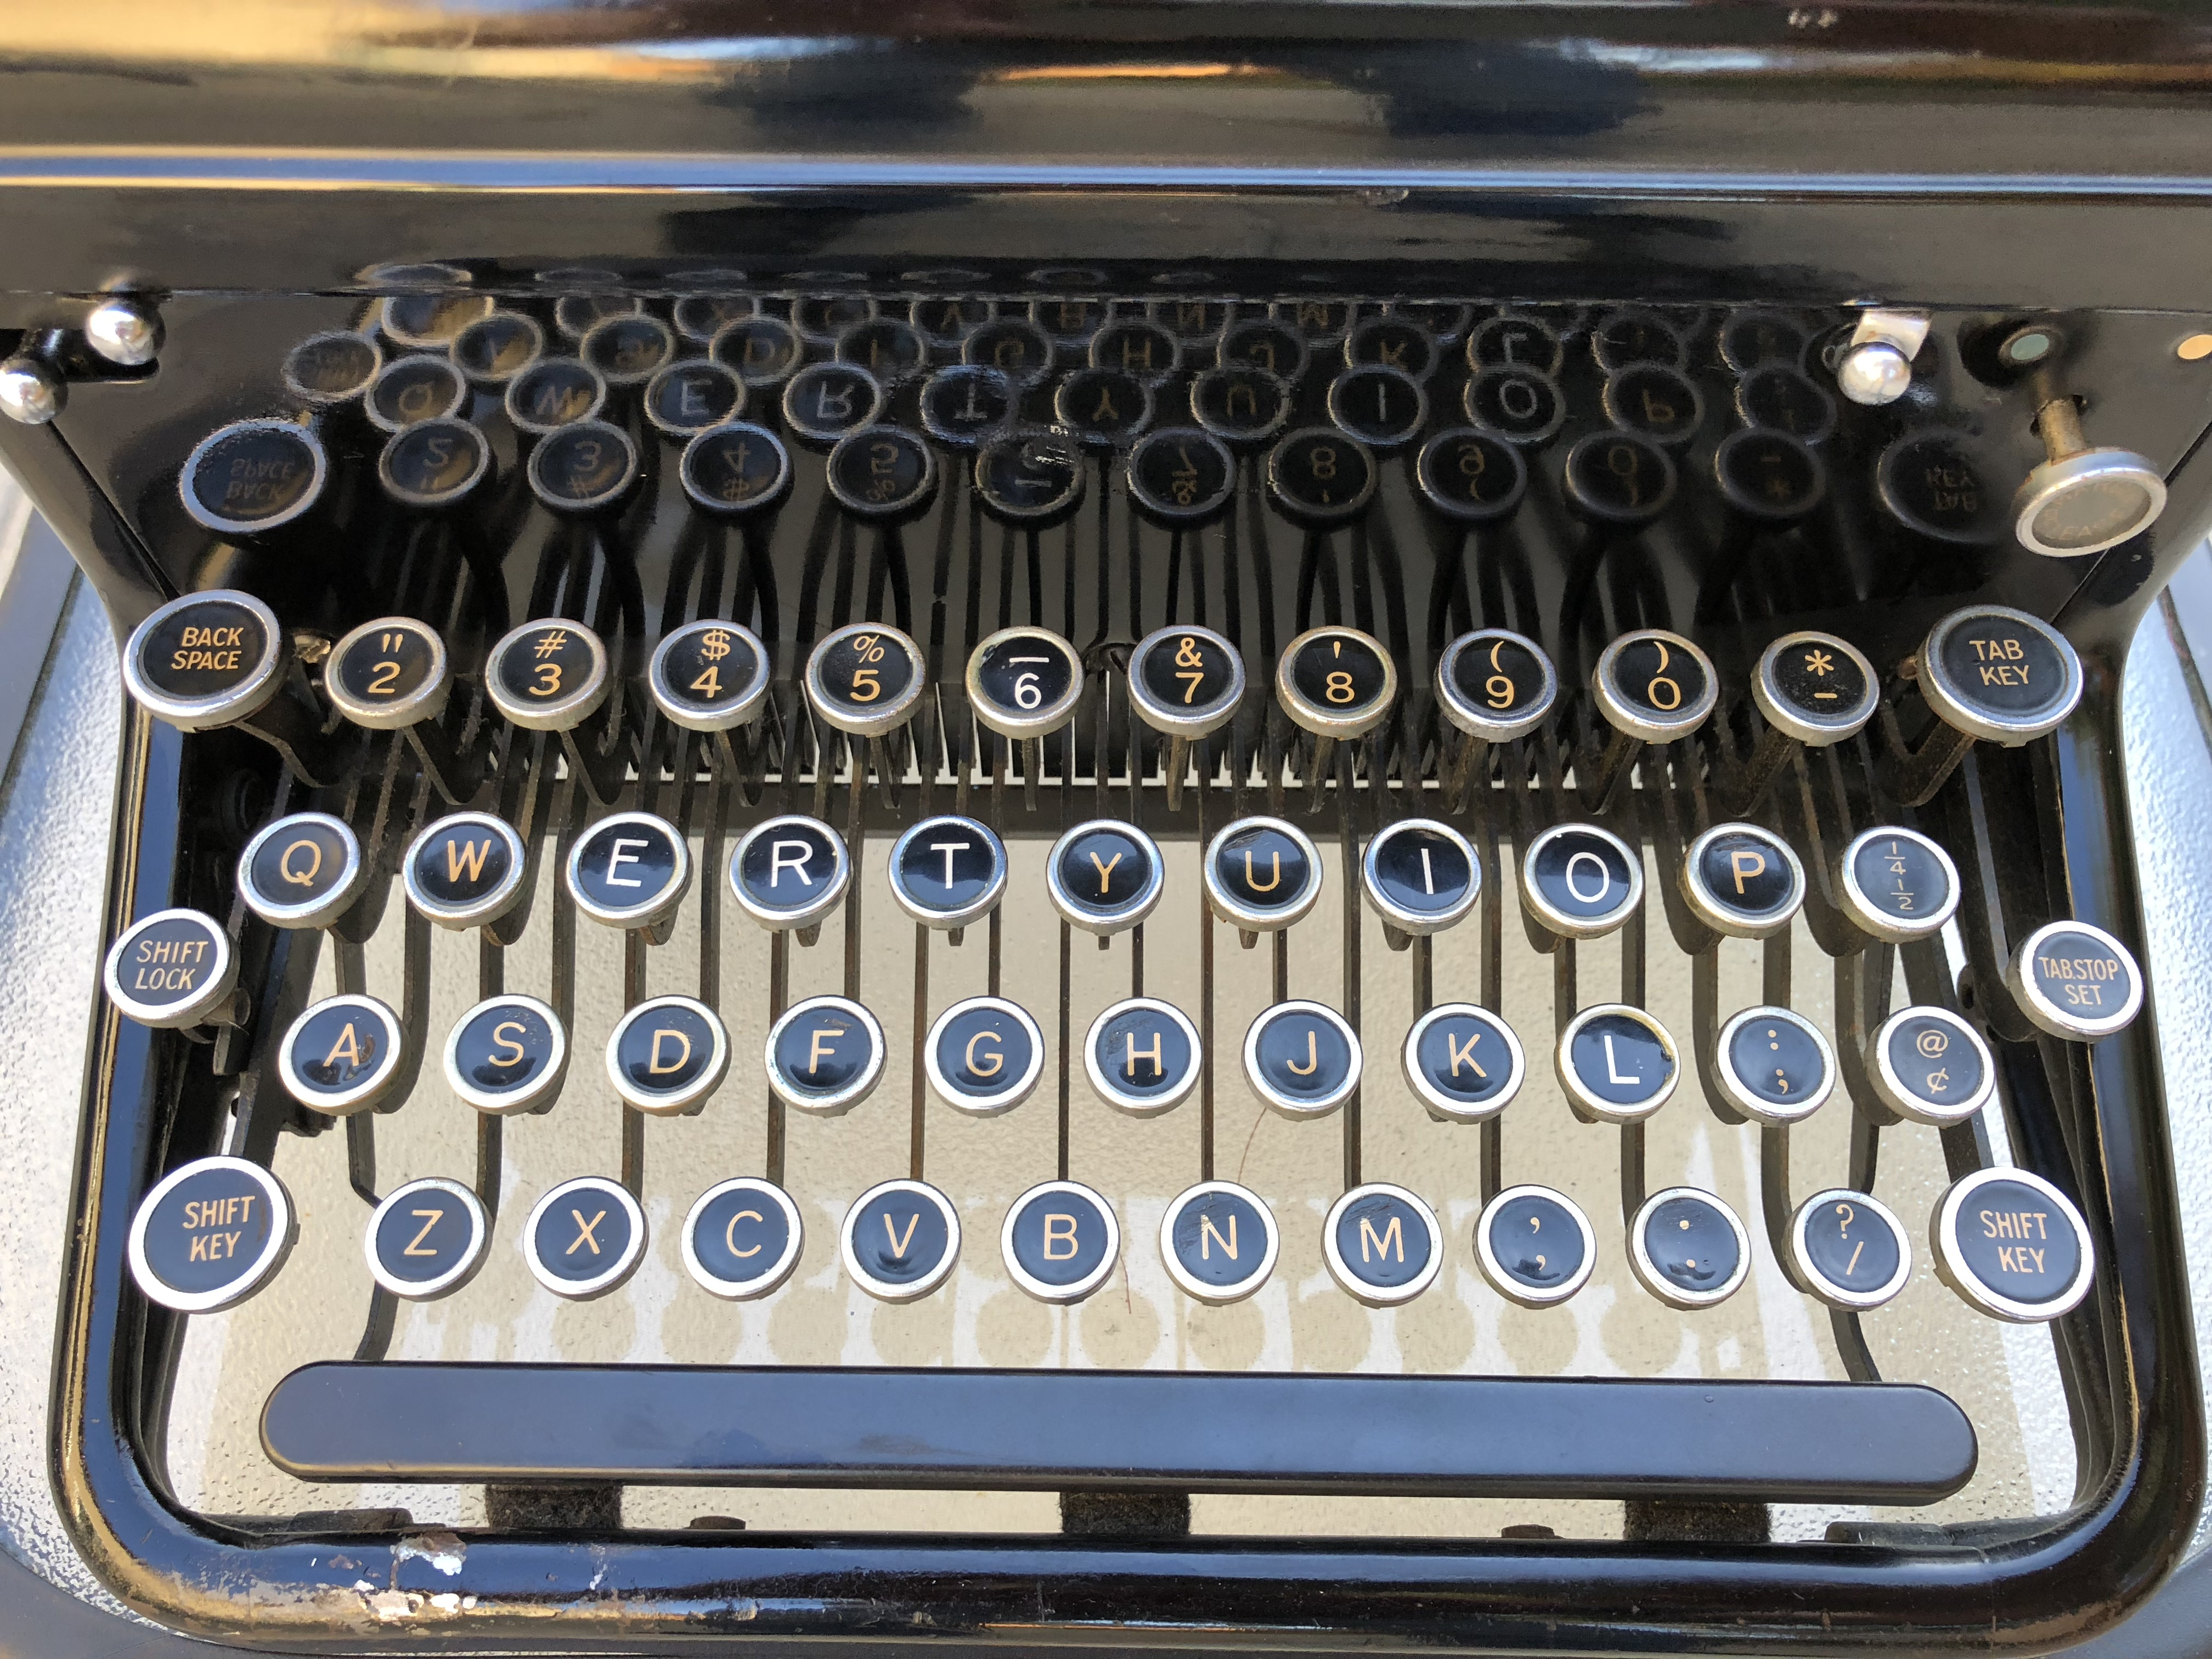 The keyboard with replaced keys